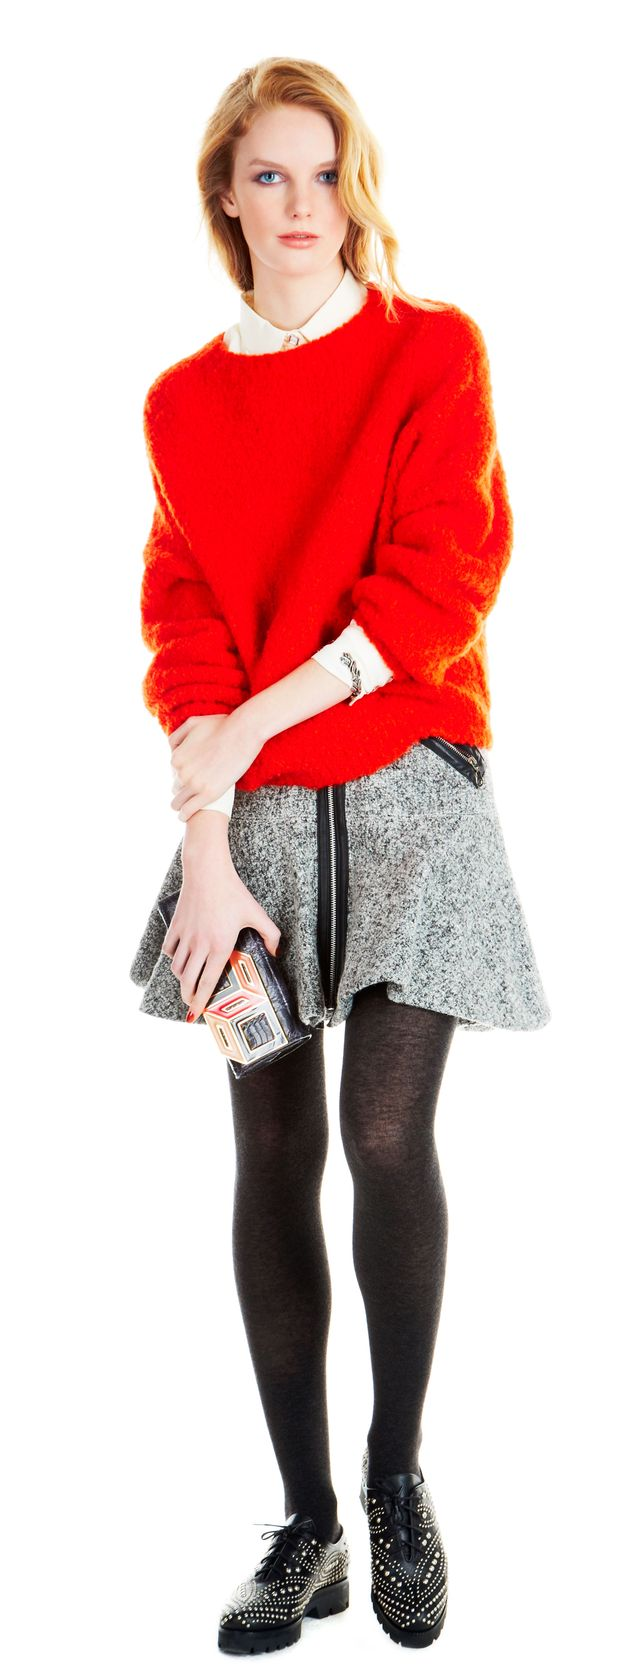 Soft Focus: Warm Up To The Season's Bright Sweaters